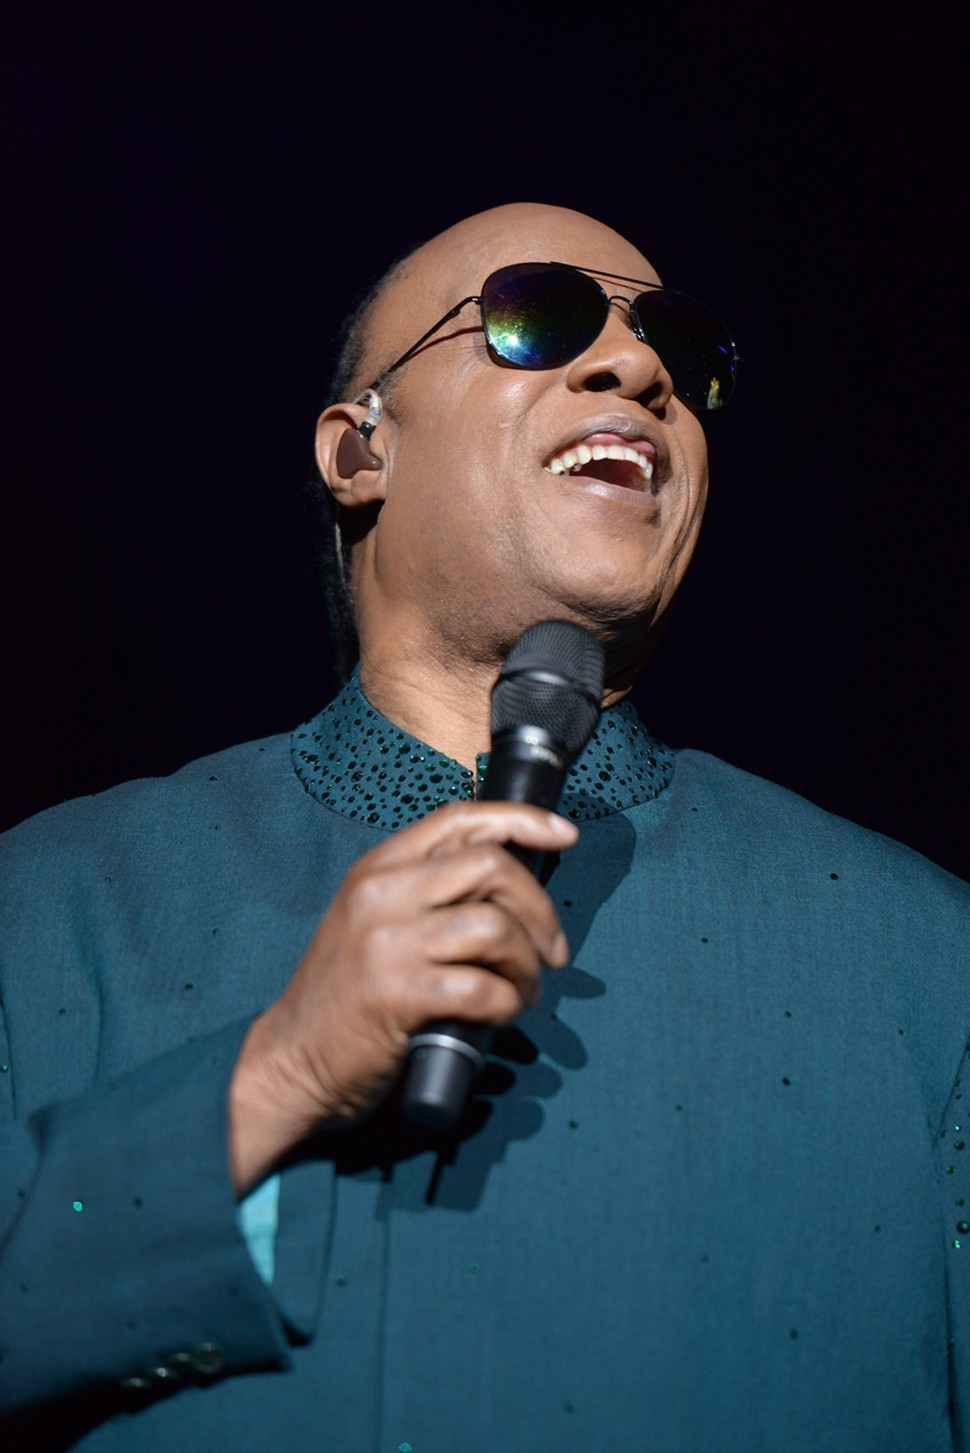 At first, without the Afro and the facial hair, he doesnt look all that much like the Stevie Wonder I remember. But then he smiles!